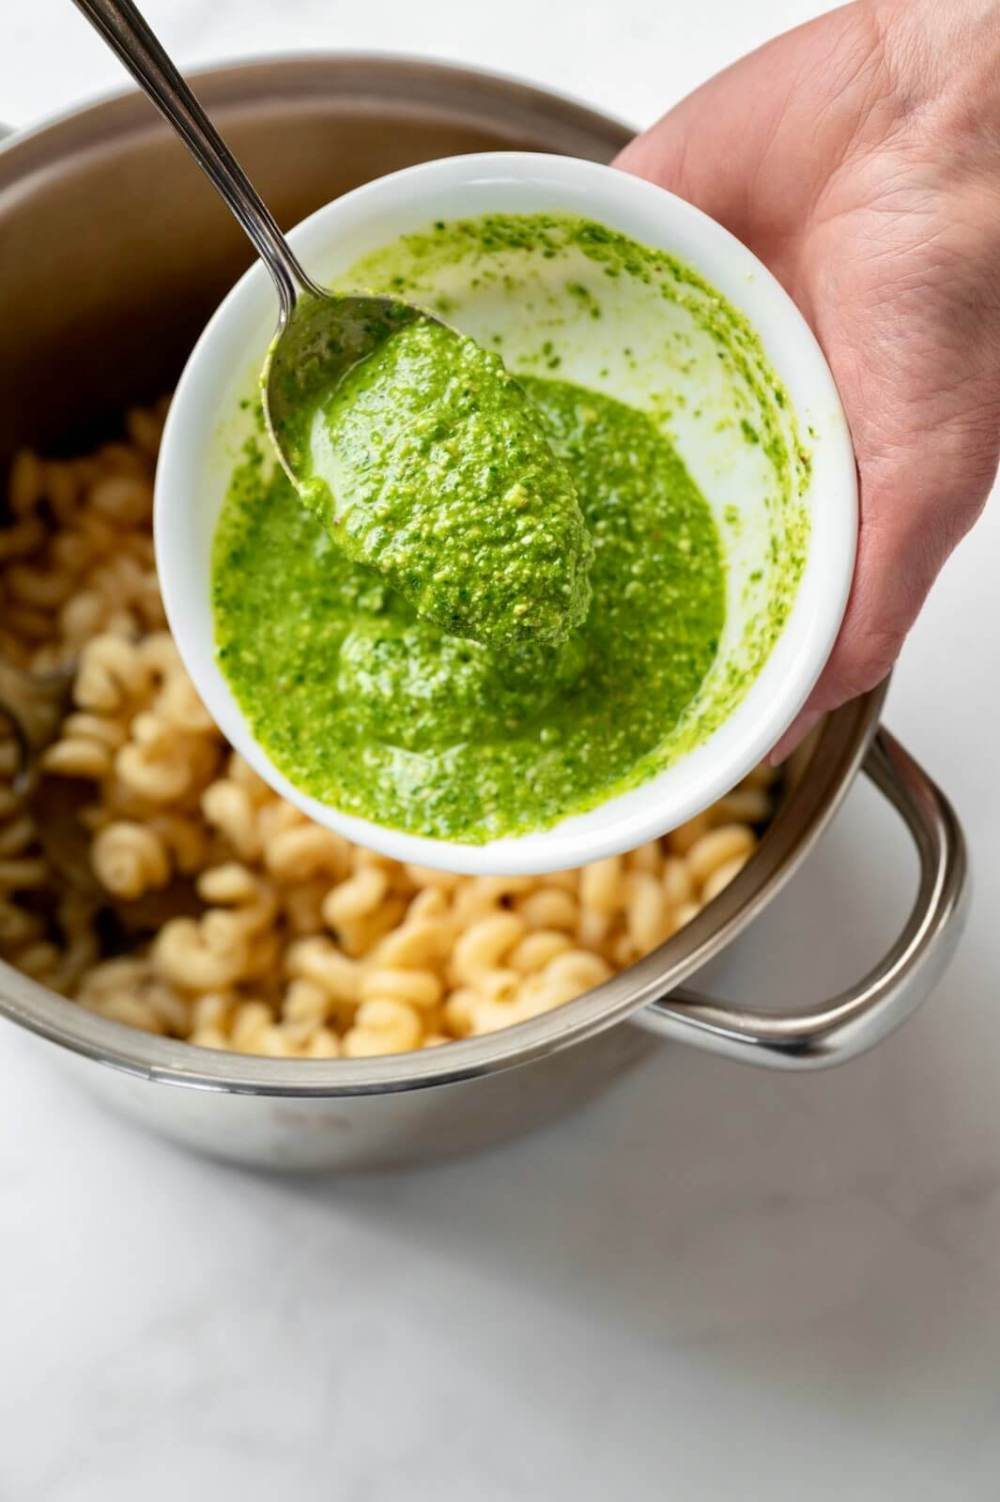 Easy, accessible, and endlessly versatile, this flavorful pesto is especially ideal when fresh herbs aren't available. It stays green, too!